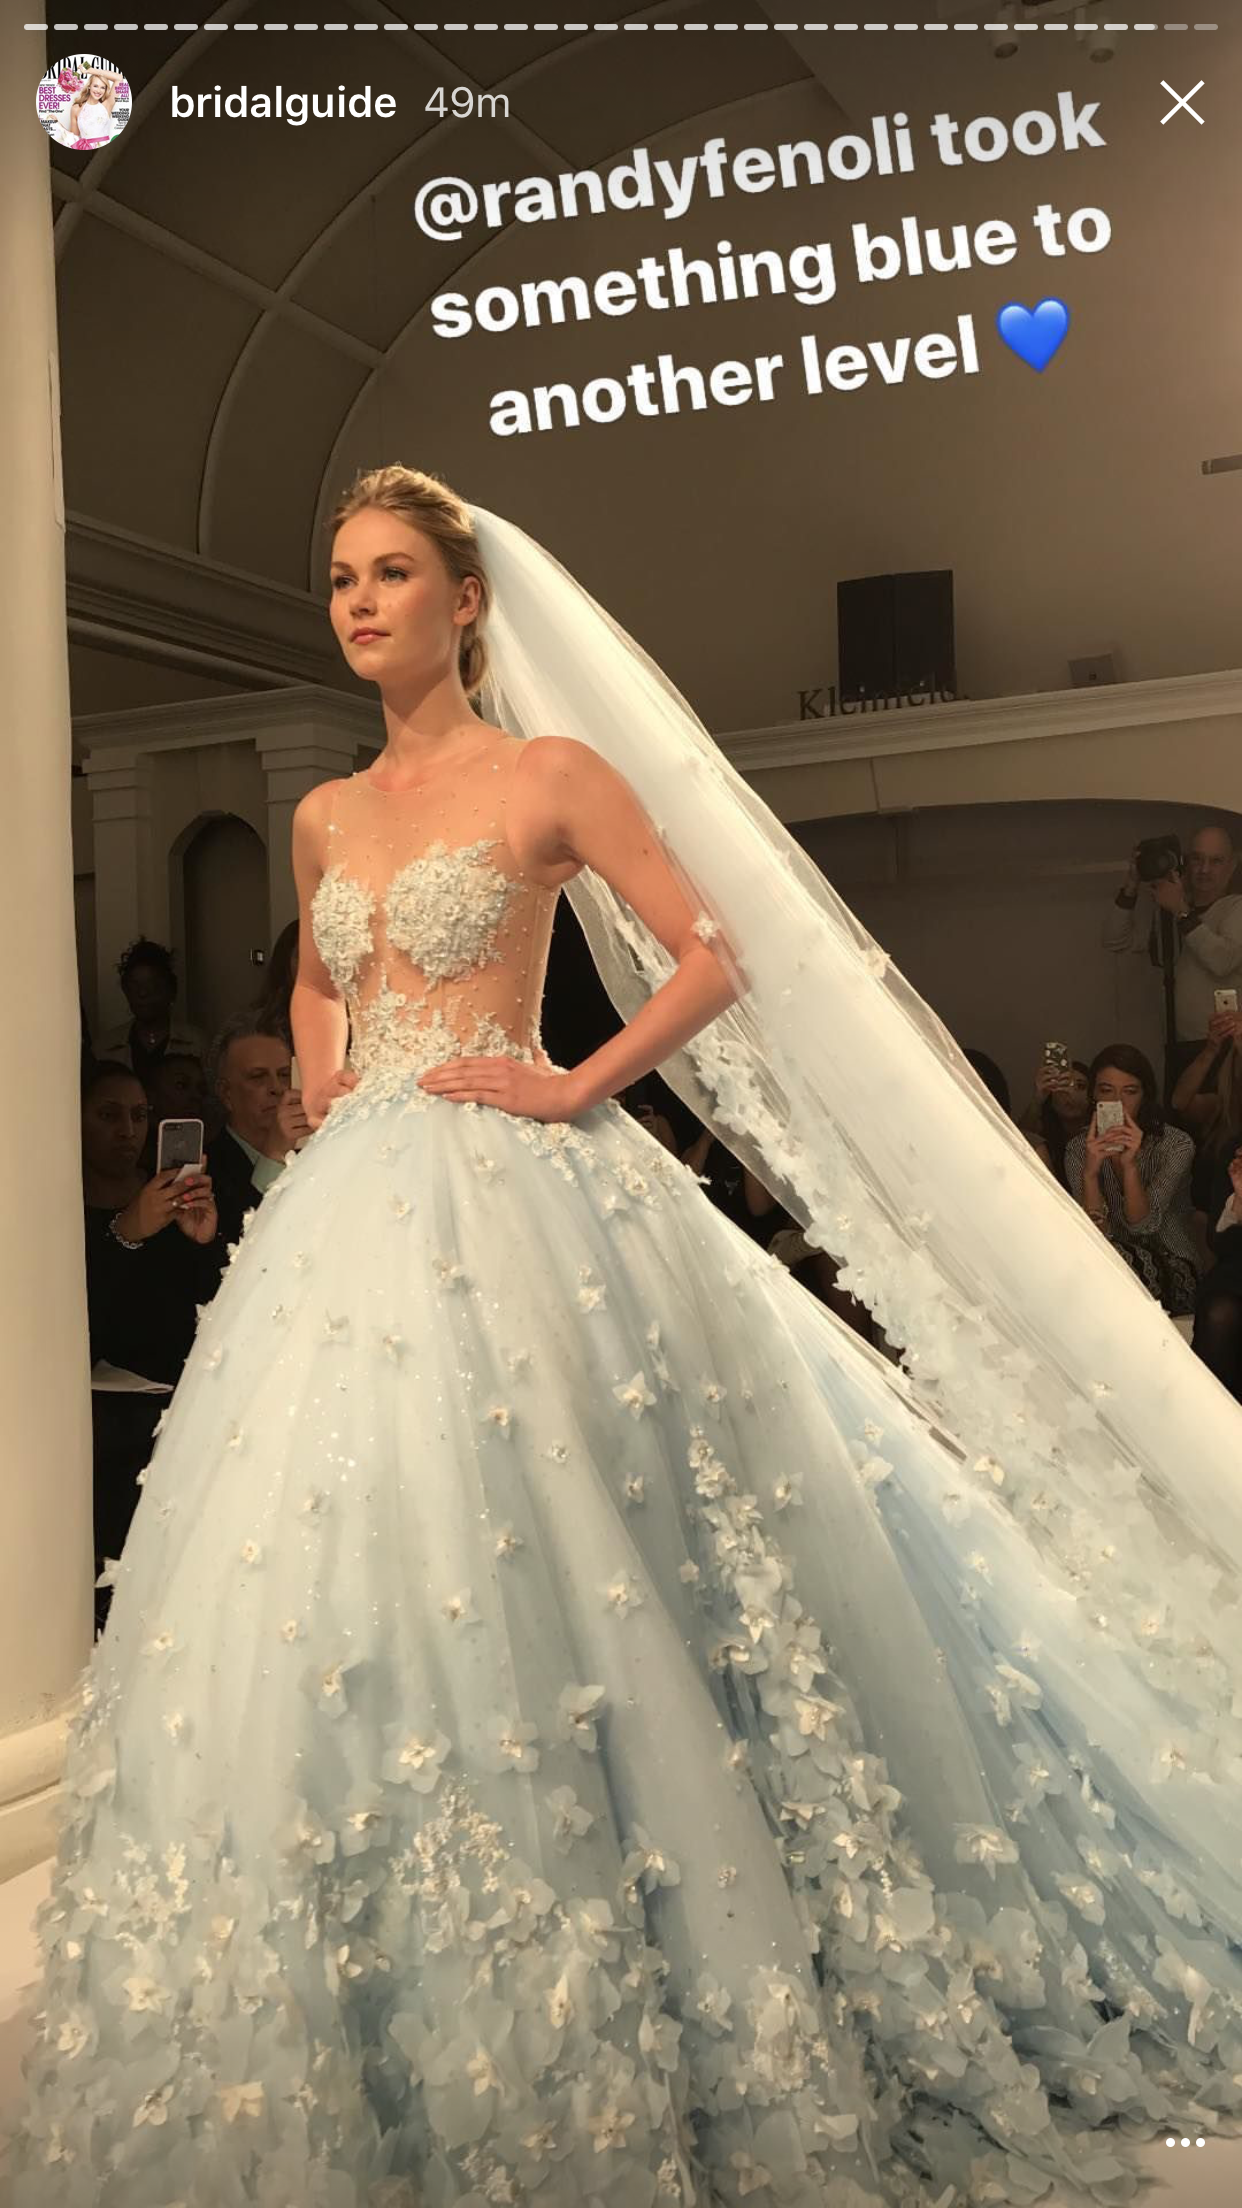 Something blue wedding dress by Randy Fenoli